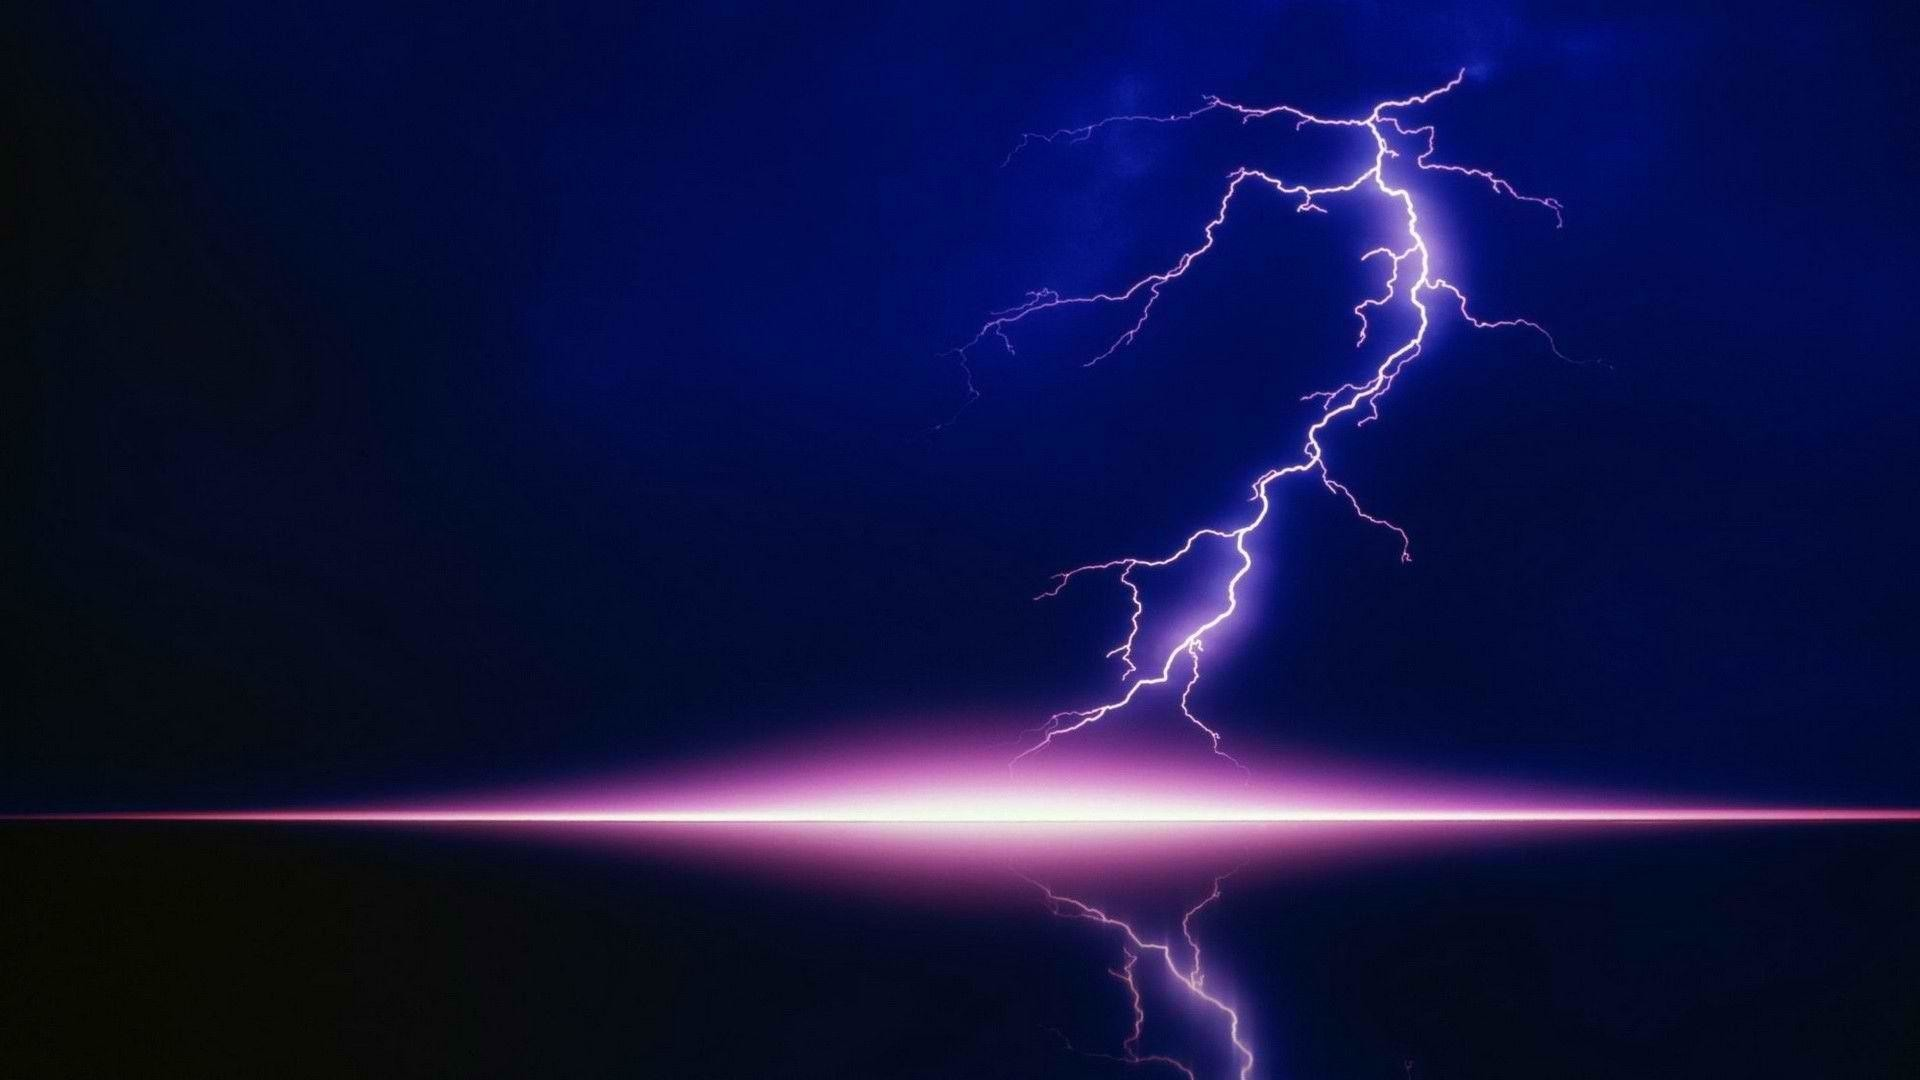 1920x1080 HD Wallpapers - Download Purple Lightning Wallpaper | 100% High .